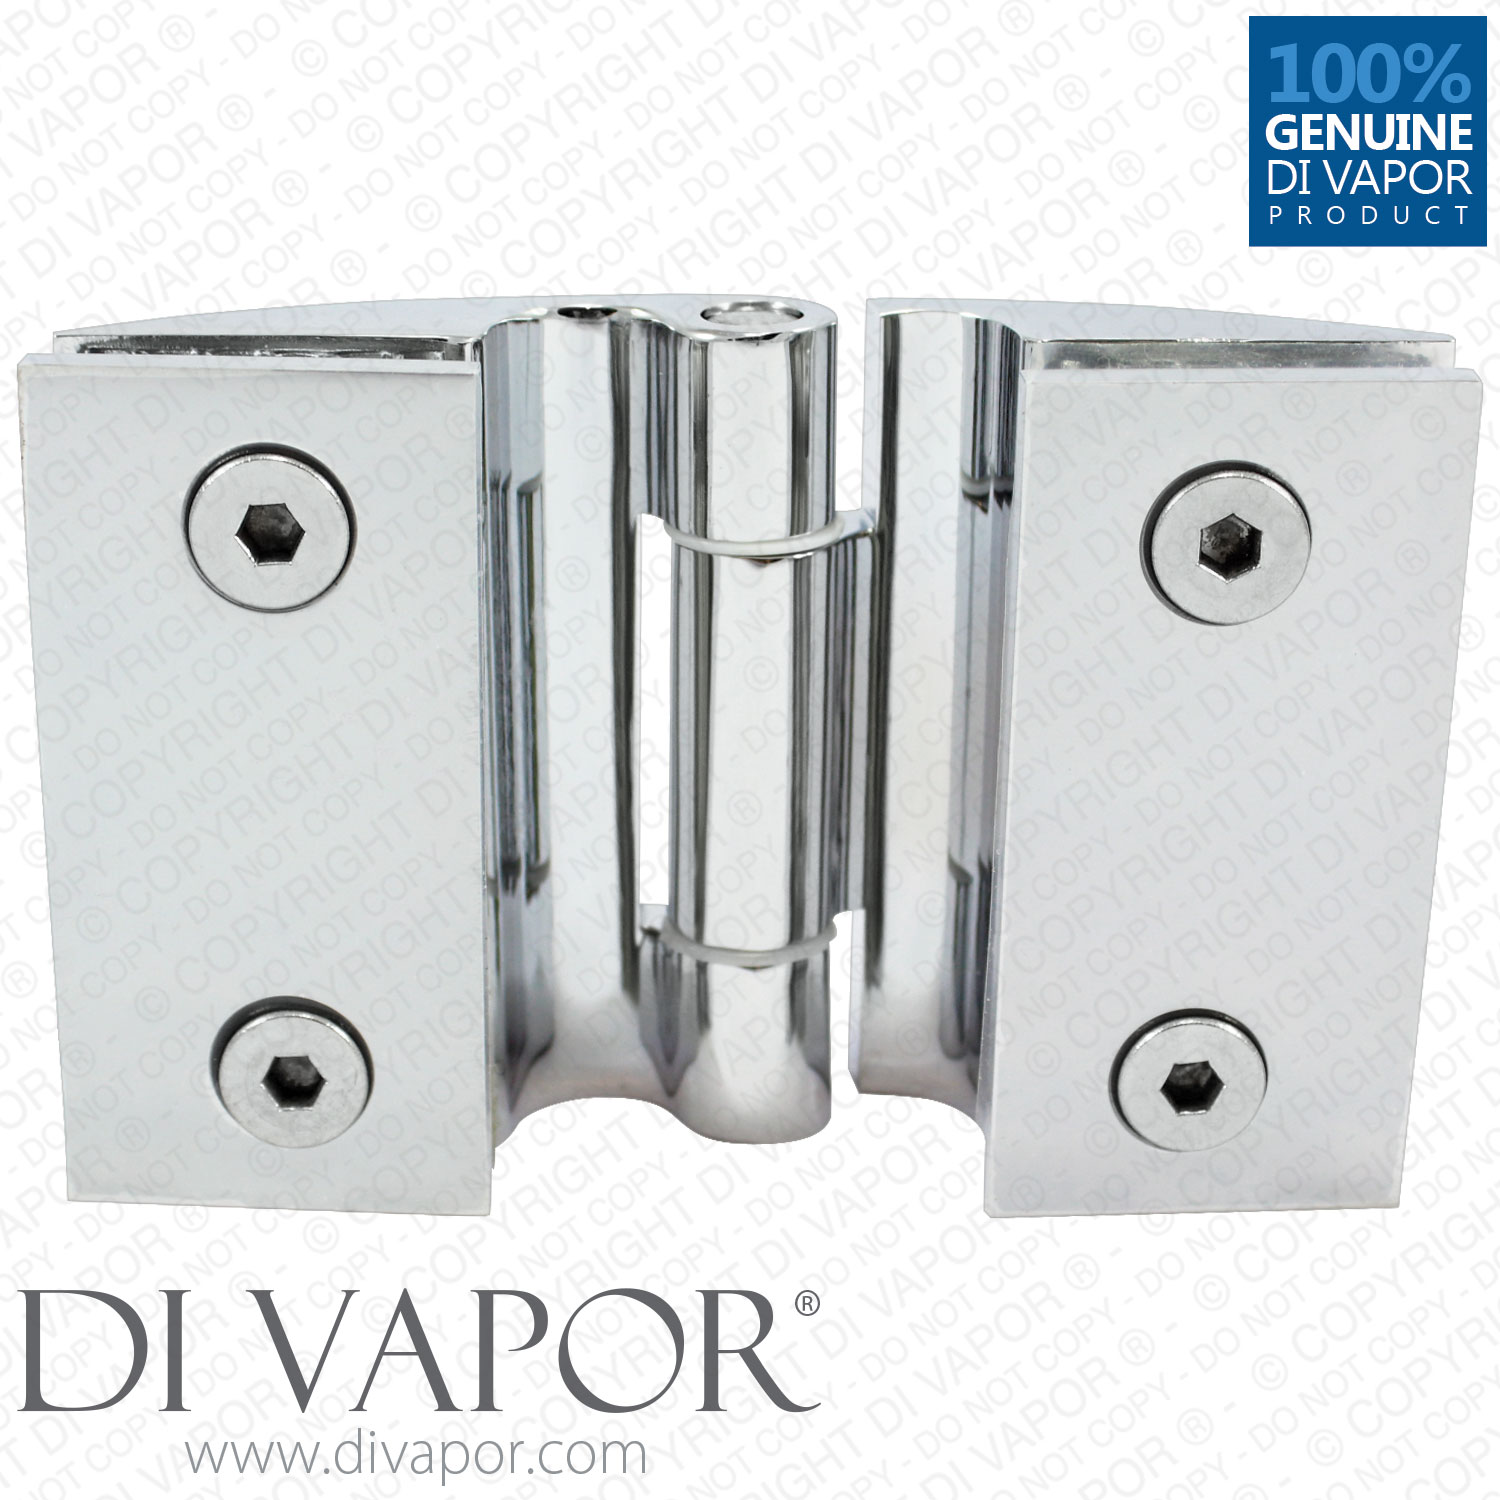 Glass Shower Door Hinges : Clam shell door hinge for heavy glass shower